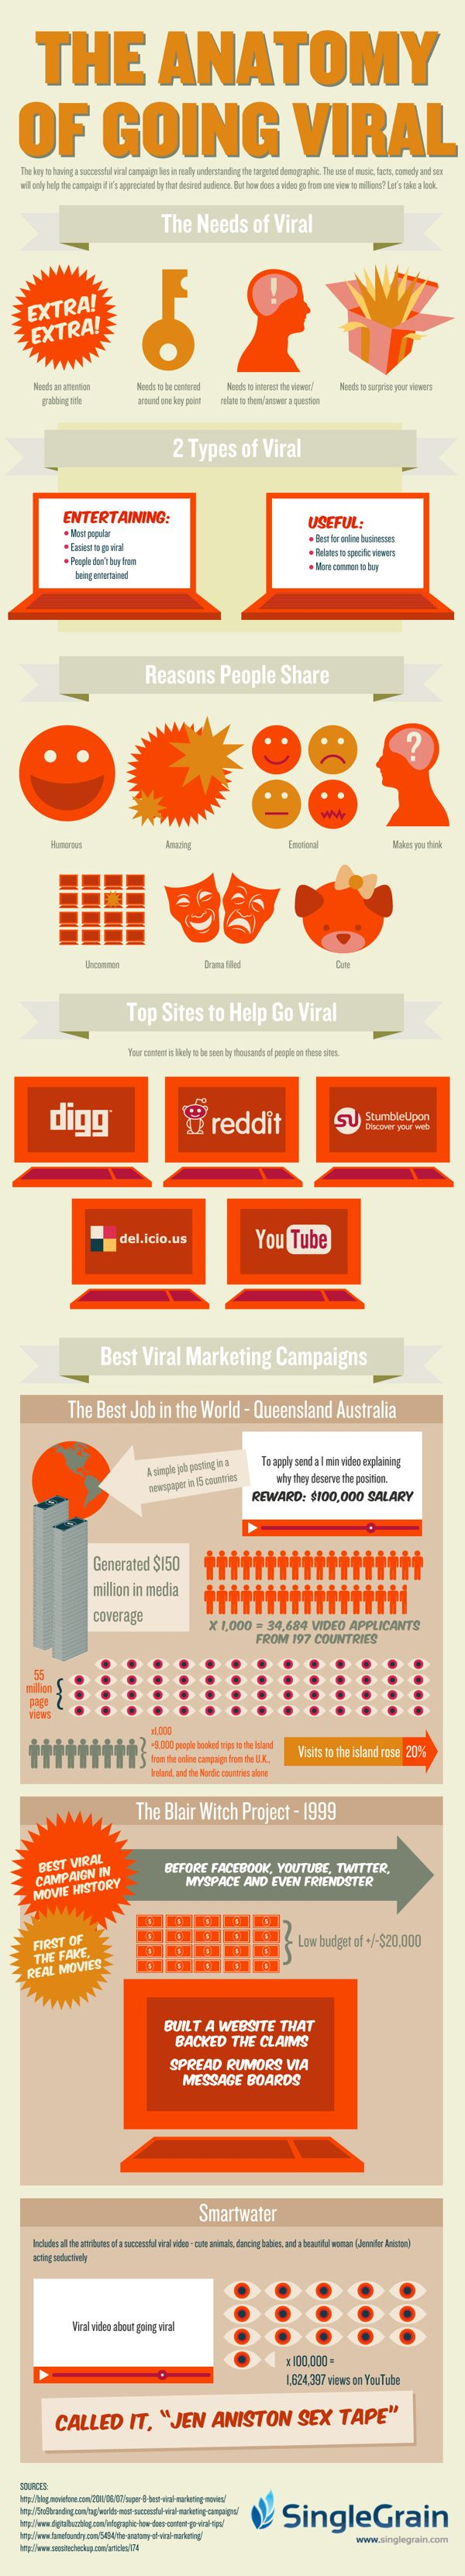 The Anatomy of Going Viral   http://www.media-engine.de/wie-man-virale-kampagnen-erstellt/